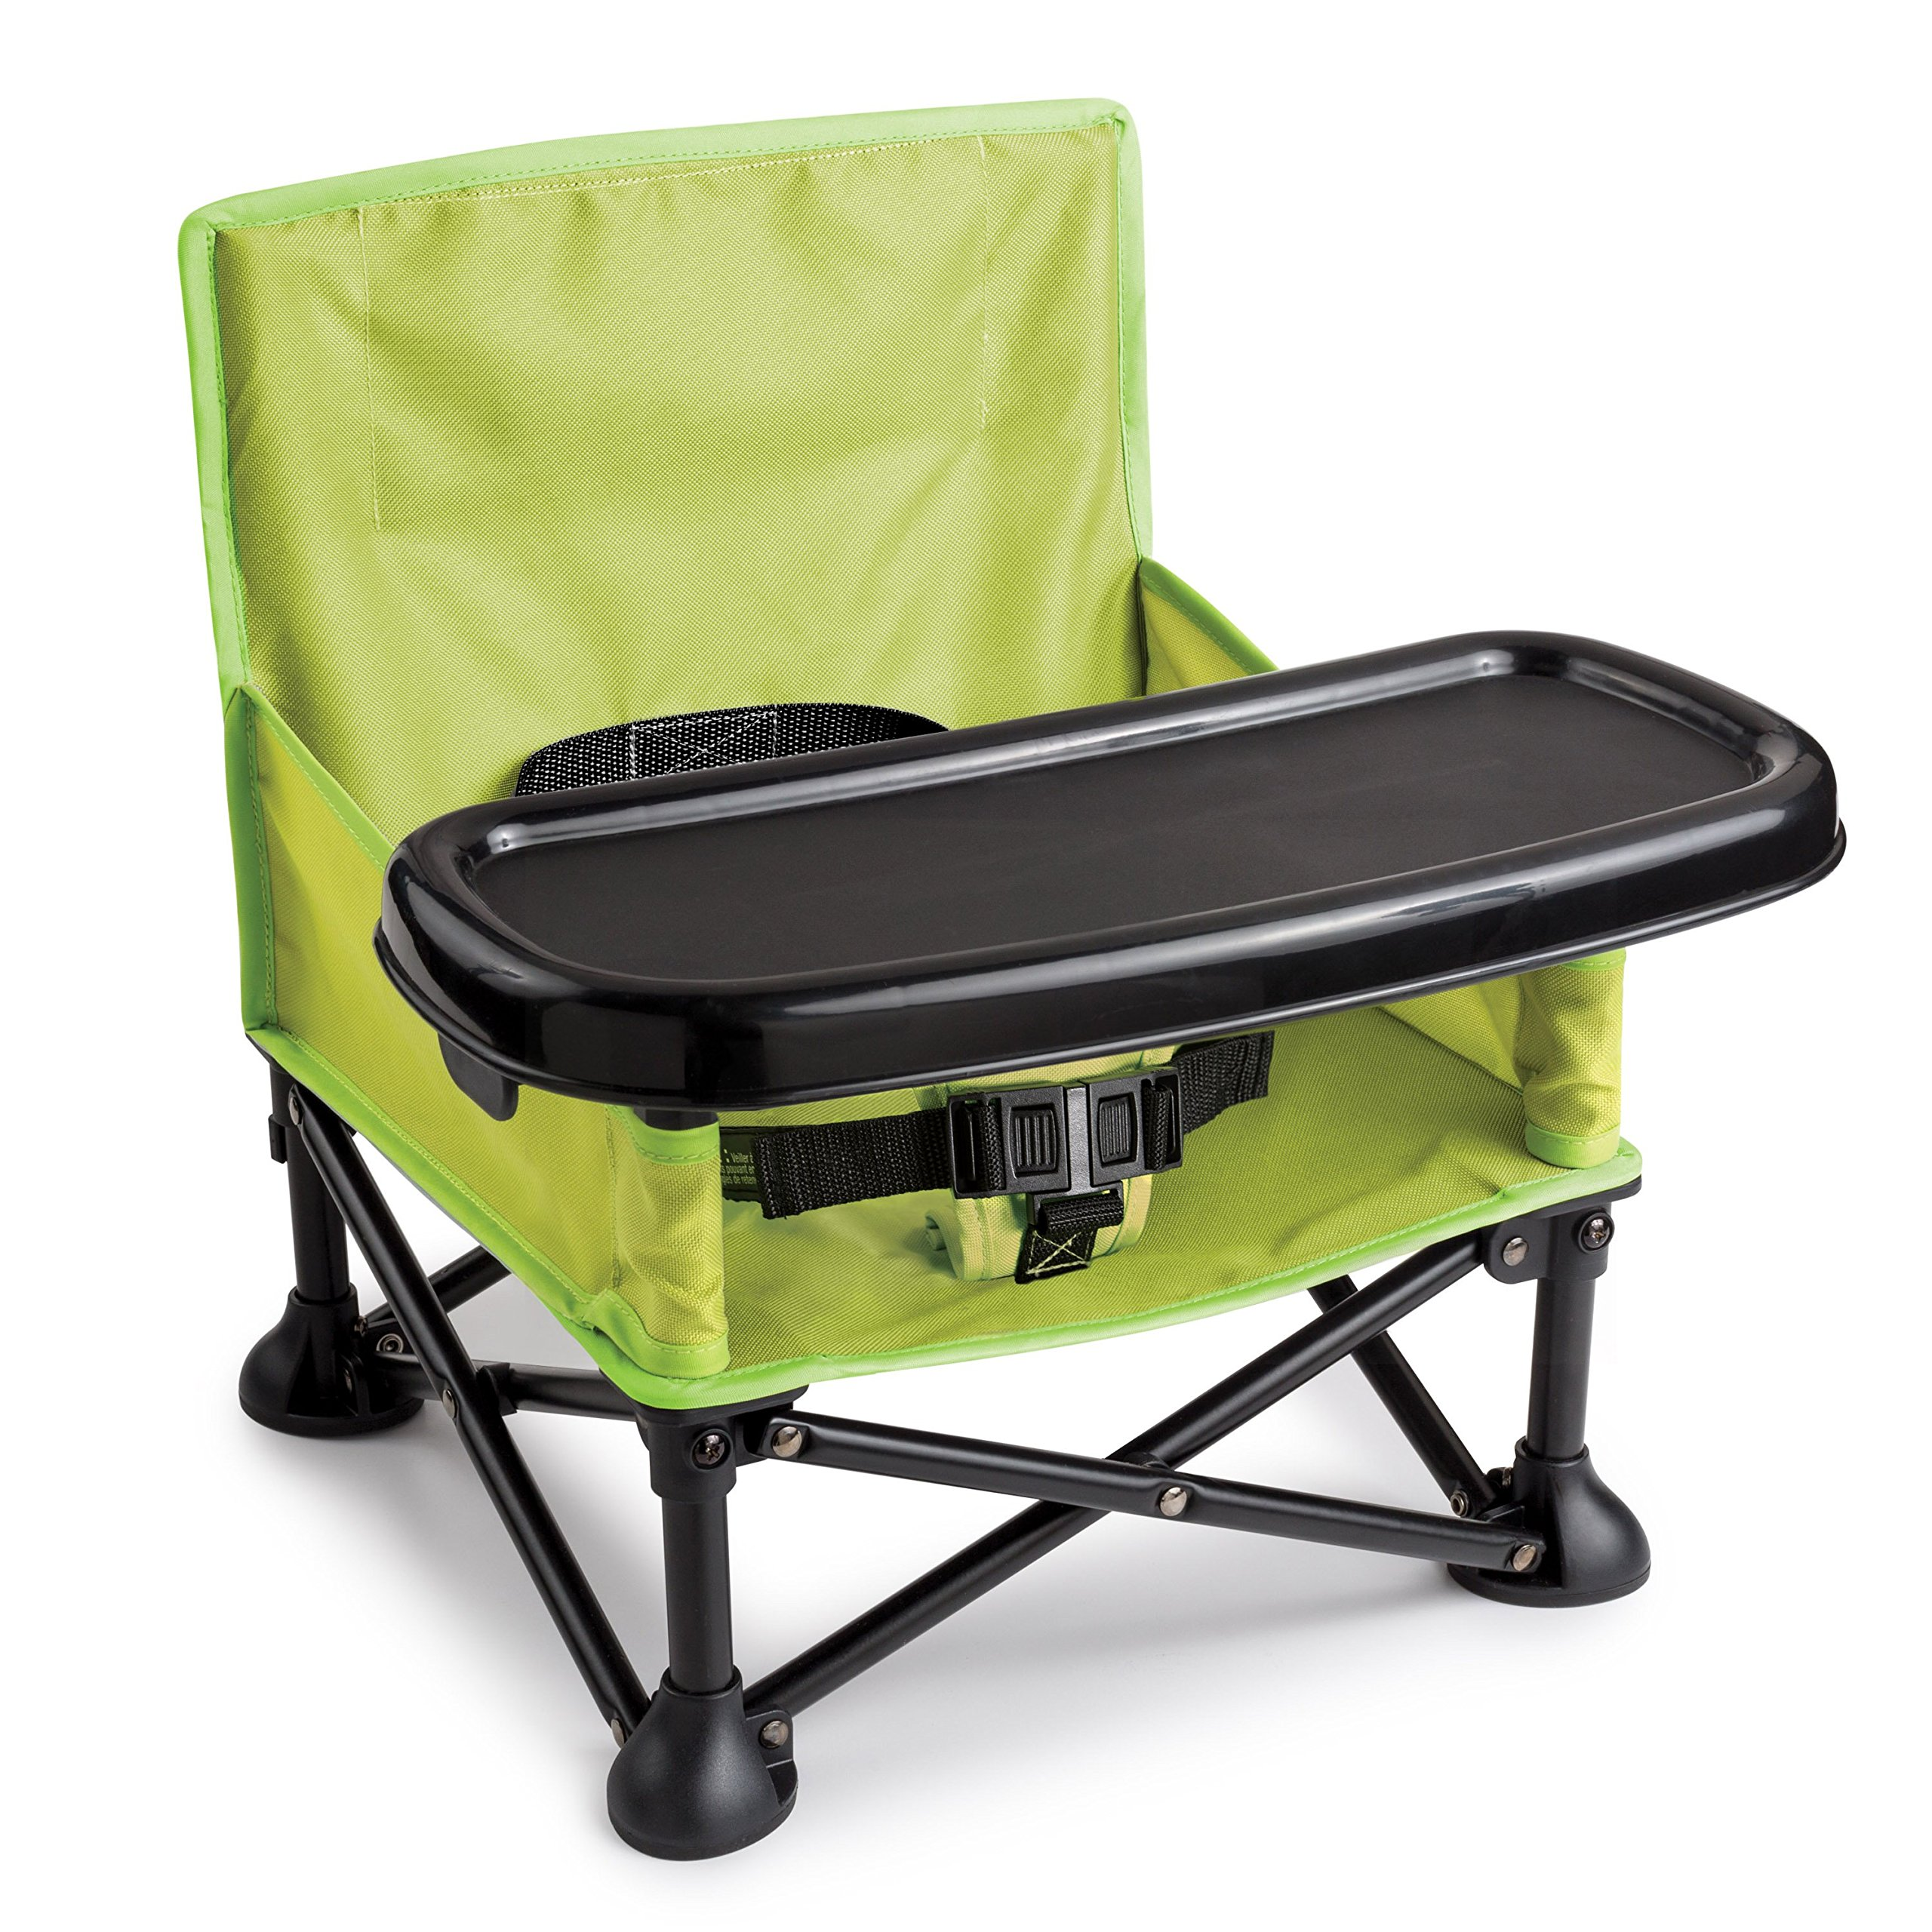 new camping booster portable infant seat baby toddler. Black Bedroom Furniture Sets. Home Design Ideas